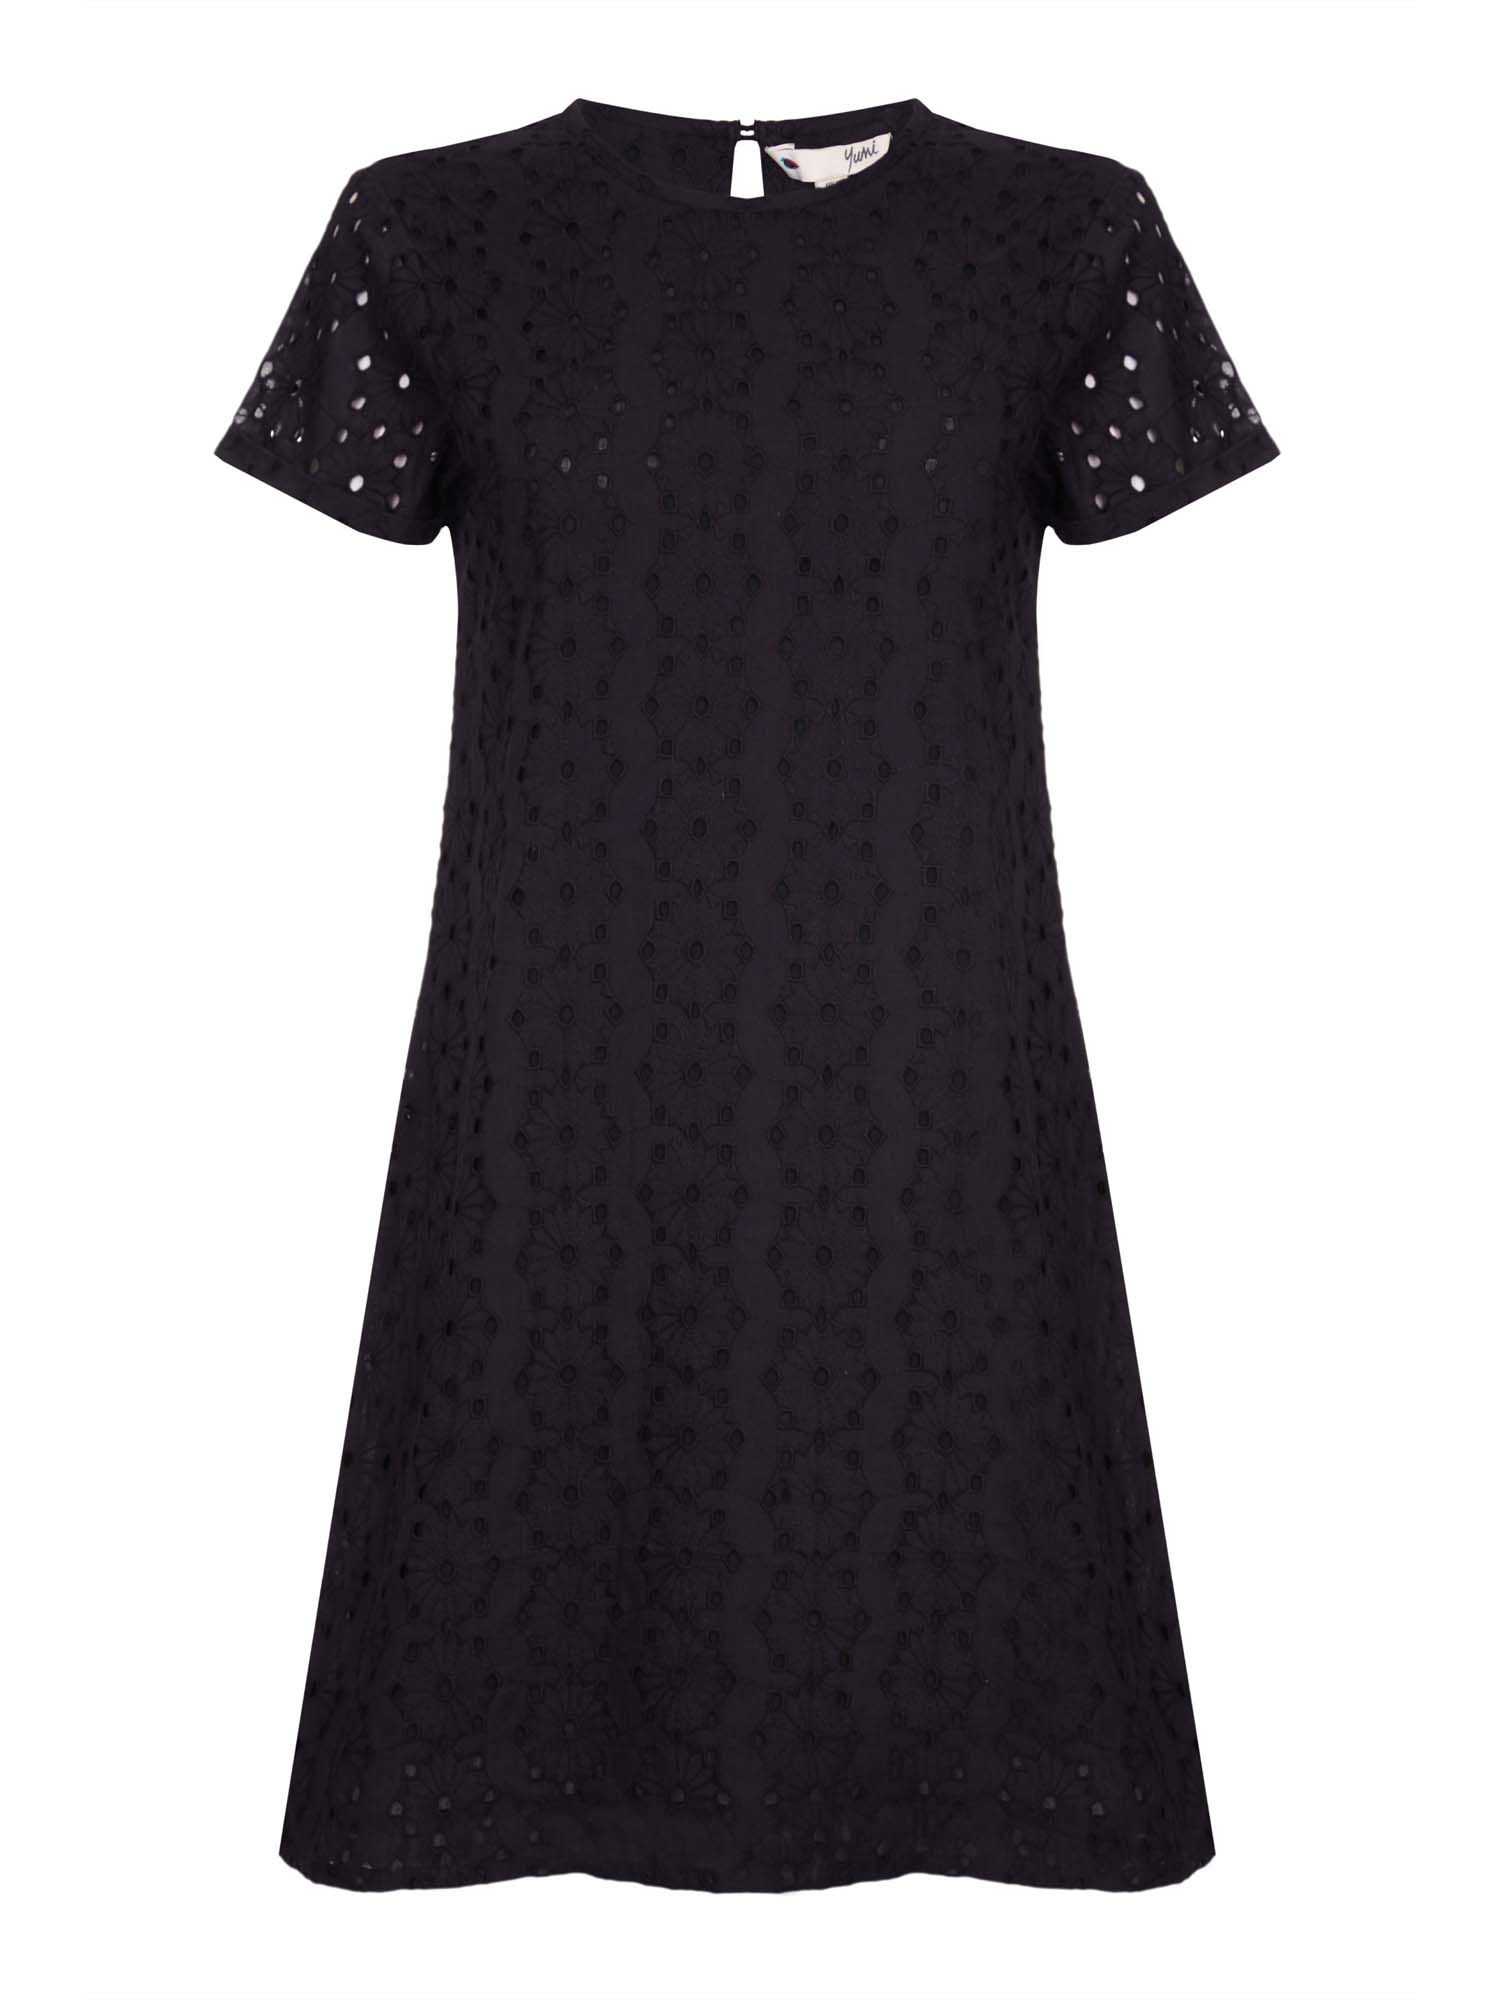 Yumi Schiffli Lace Short Sleeve Dress, Black